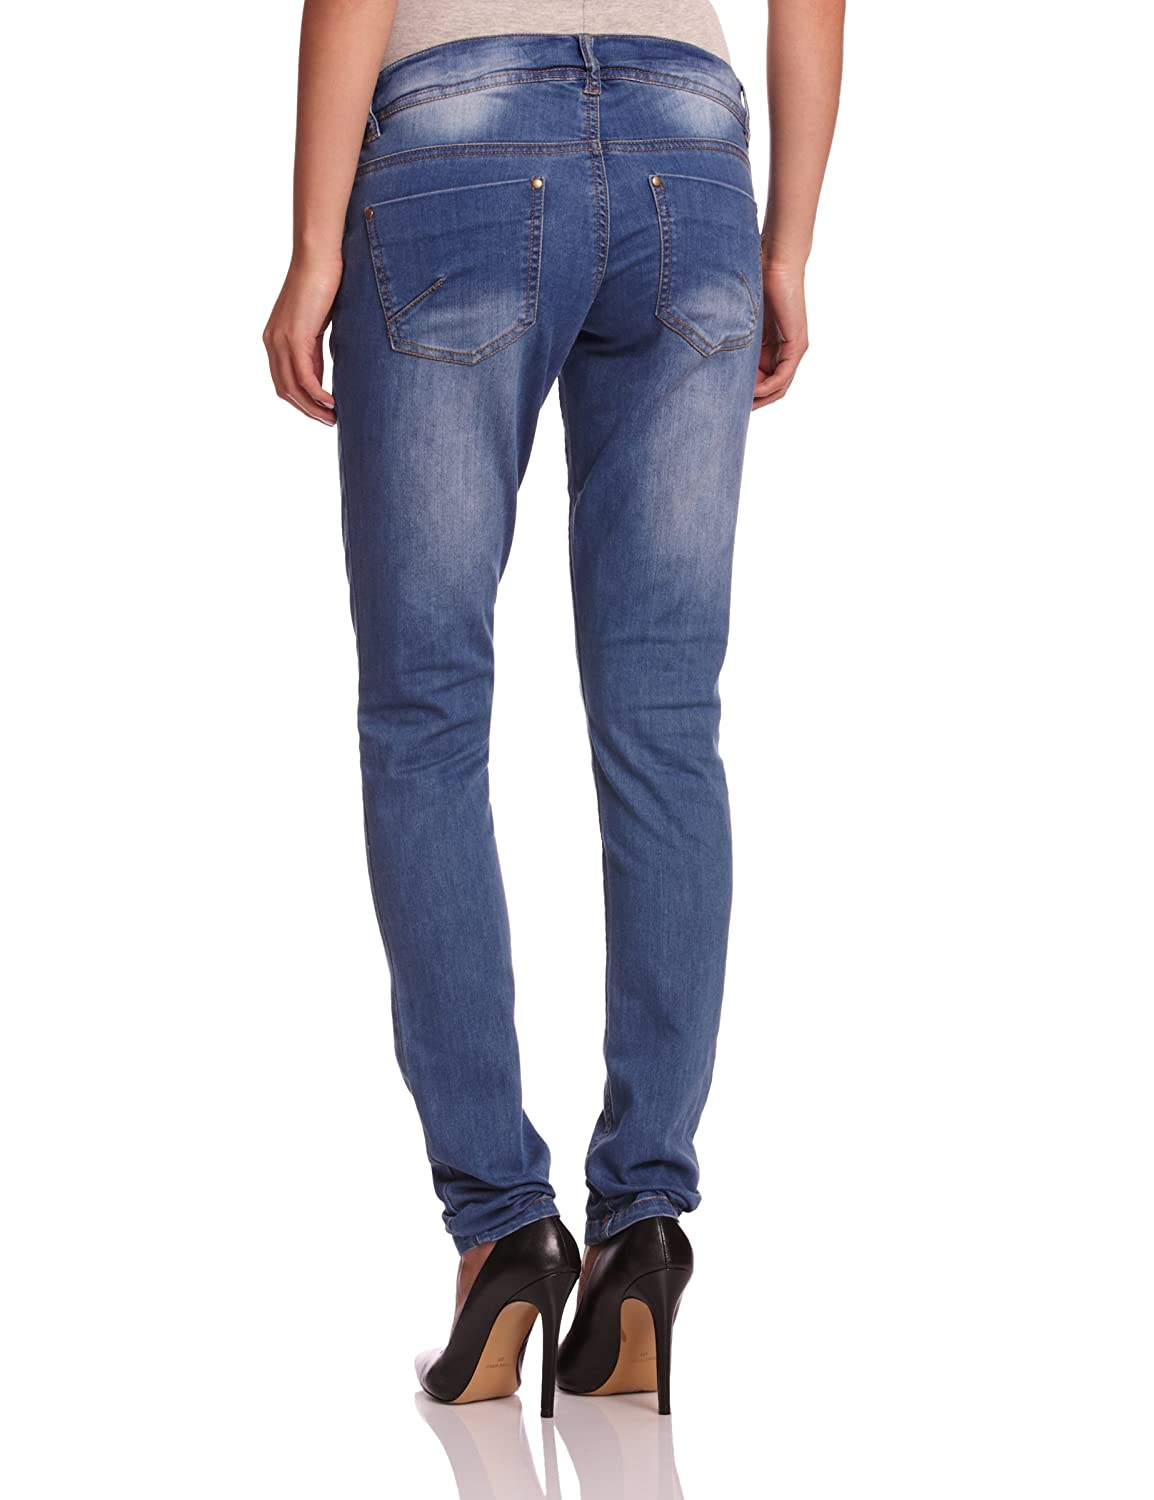 Where To Buy Cheap Real Cheap Cheap Online Women Frey Pocketzip Slim BJ001 NOOS Skinny Maternity Jeans Mama Licious The Cheapest For Sale 100% Original Cheap Online Clearance With Mastercard X4ZHAg1Ep